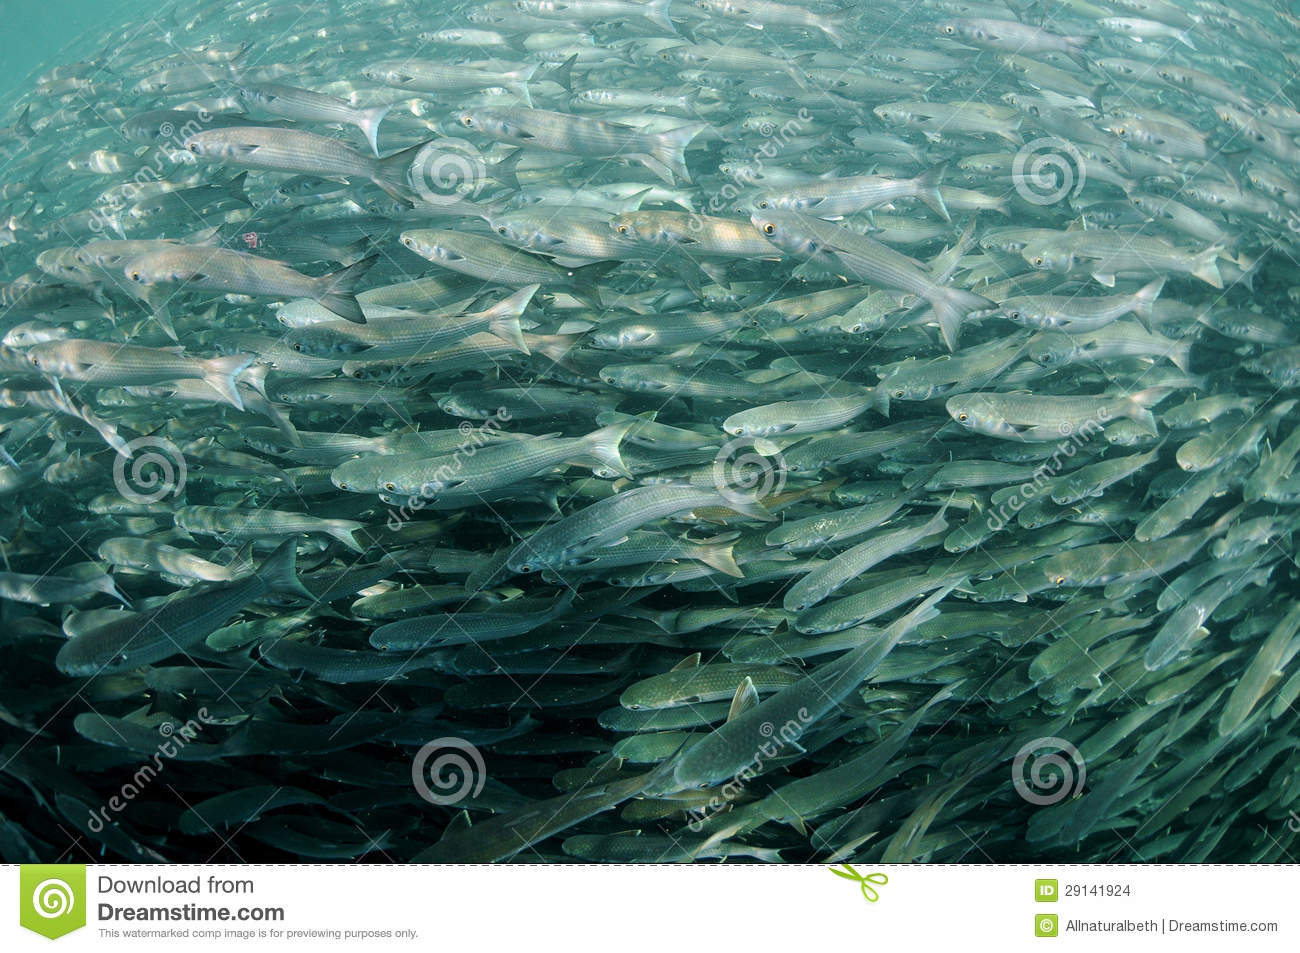 Mullet fish swimming in ocean stock photo image 29141924 for Dream of fish swimming